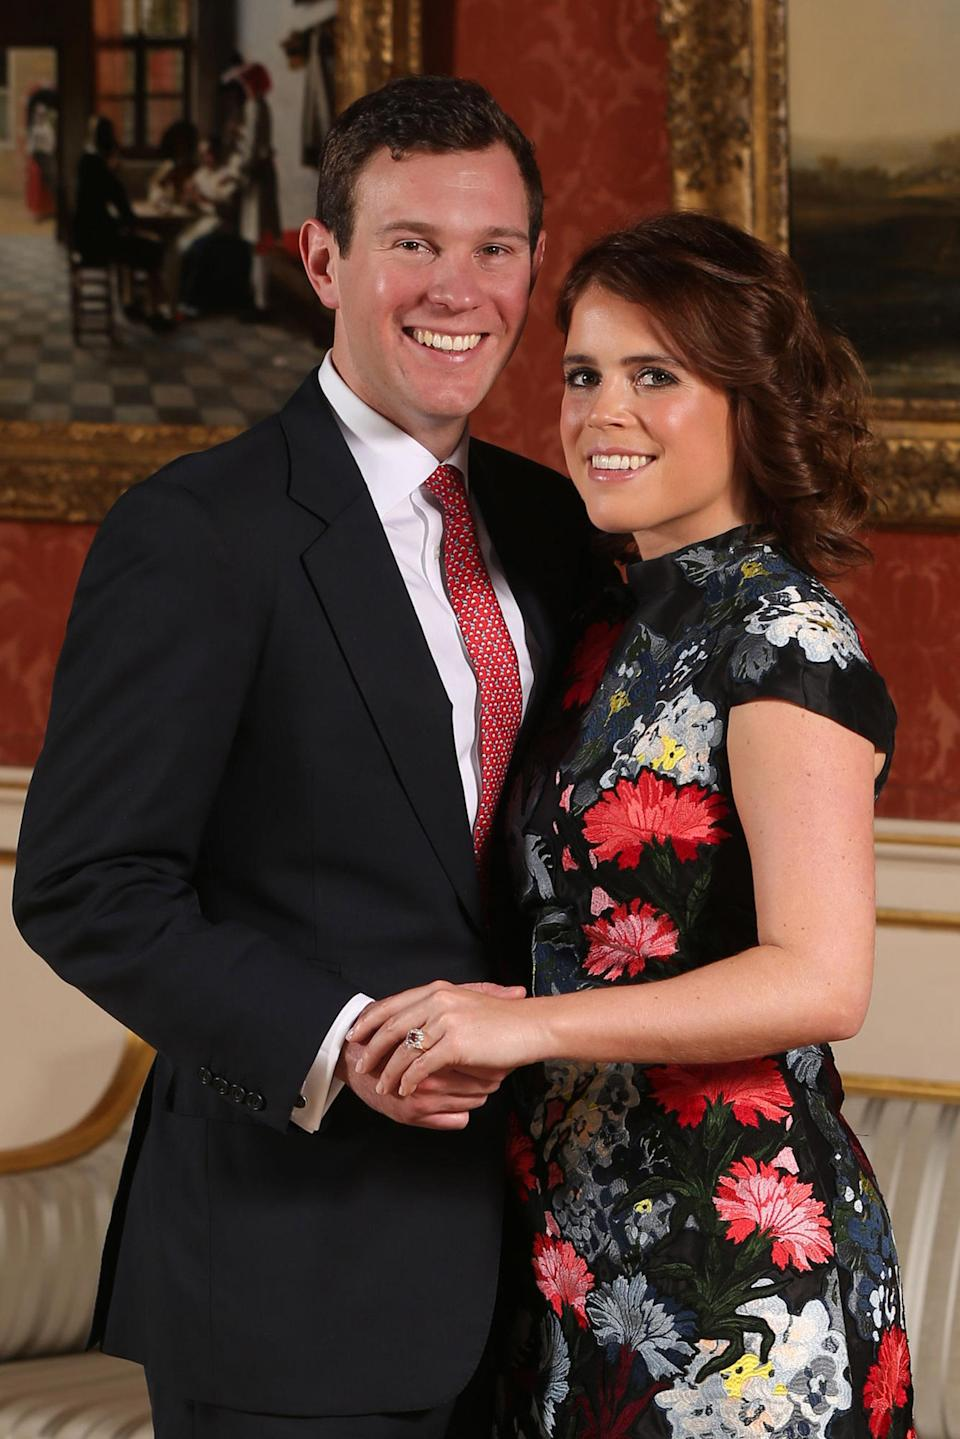 Princess Eugenie and Jack Brooksbank officially announced their engagement in January. Photo: Getty Images